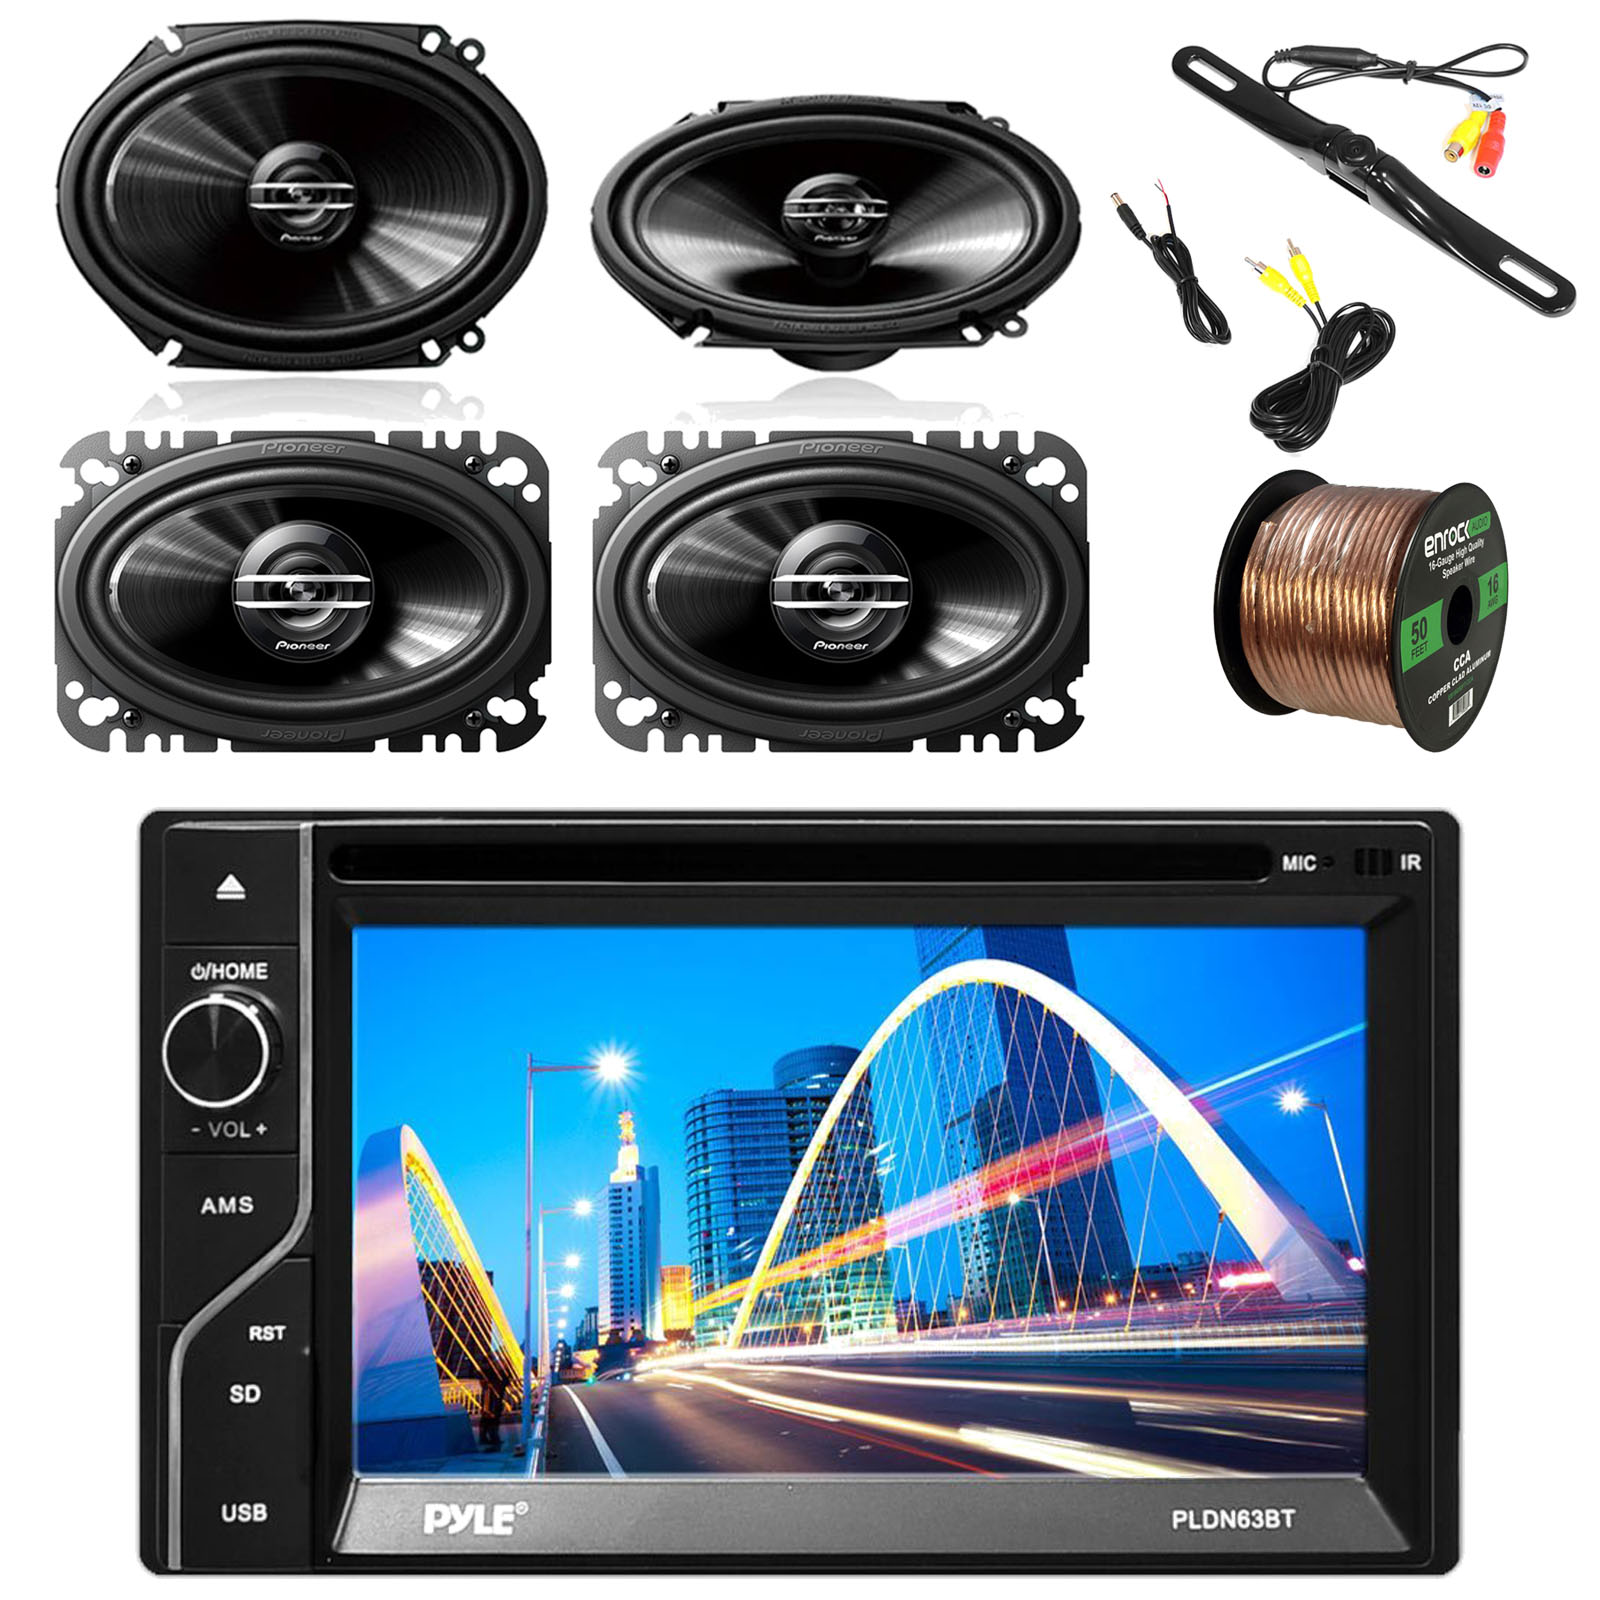 "Pyle 6.5'' 2-DIN Touch Screen BT Receiver w/Pyle License Plate Mount Rear View Color Camera, Pioneer 250W 6x8"" 2-Way Speakers(Pair), Pioneer 4x6"" 2-Way 200W Car SPKR(Pair) & Enrock 16G 50' SPKR Wire"